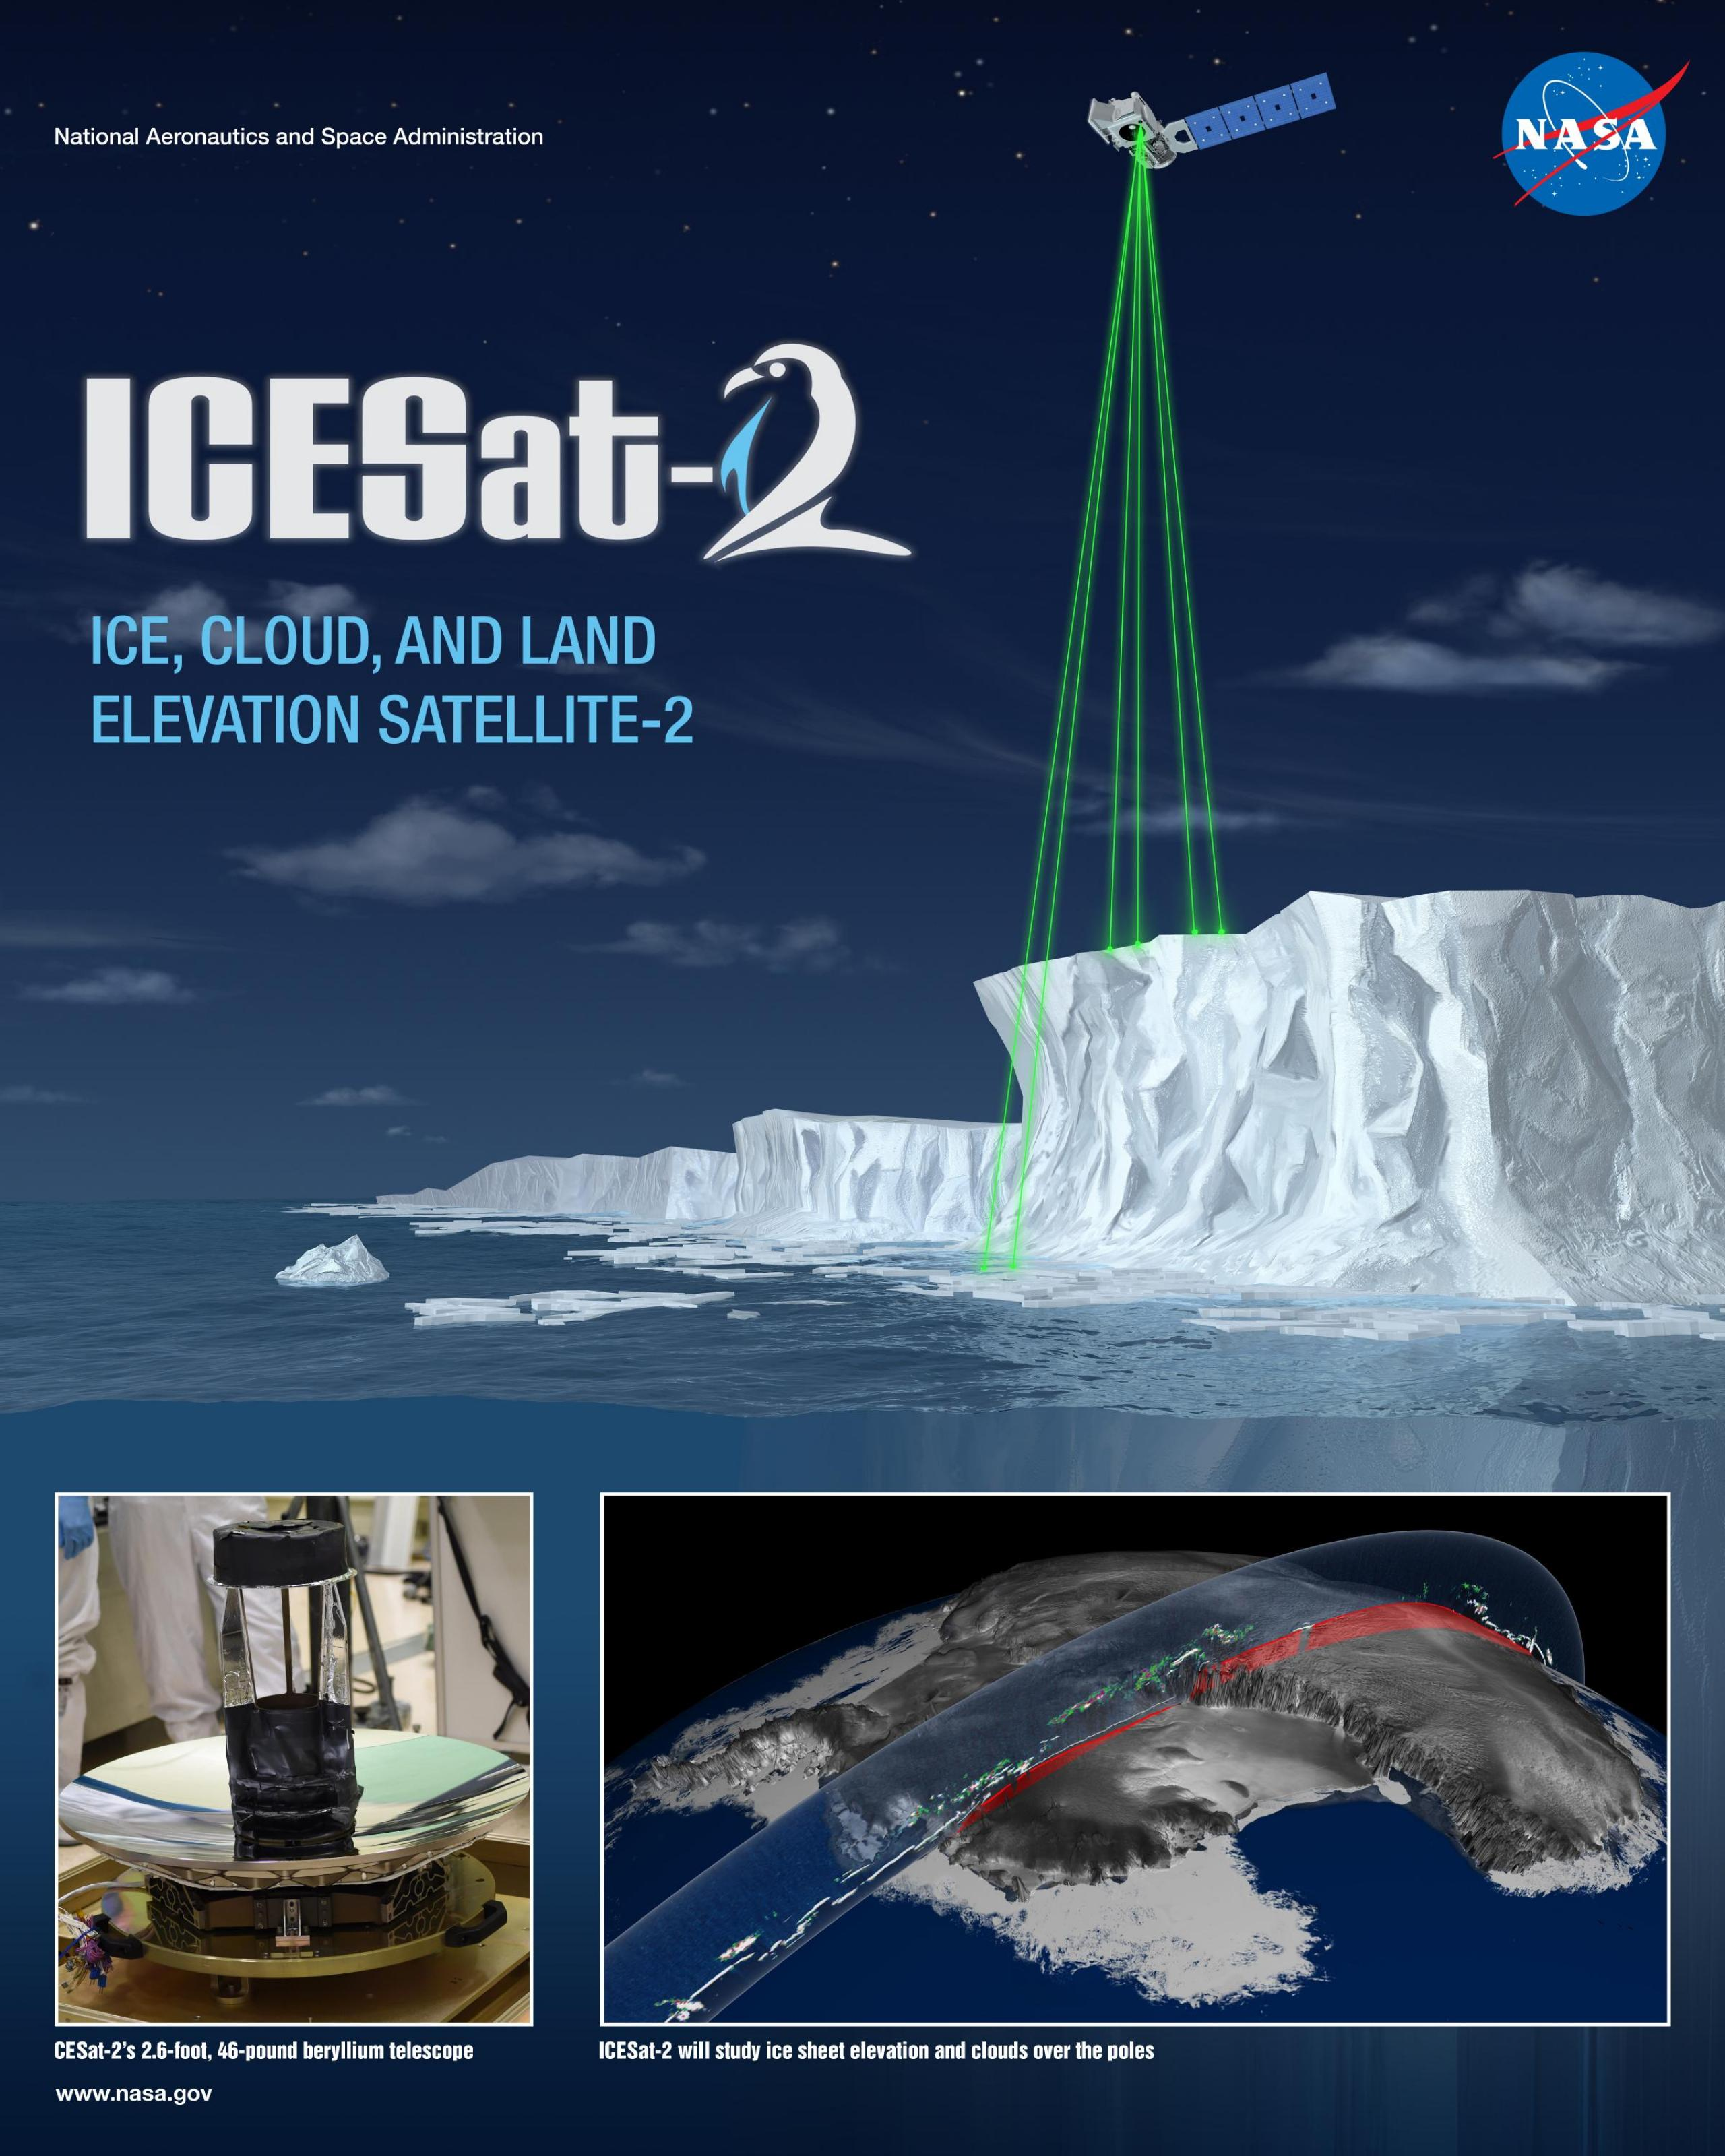 icesat-2 satellite